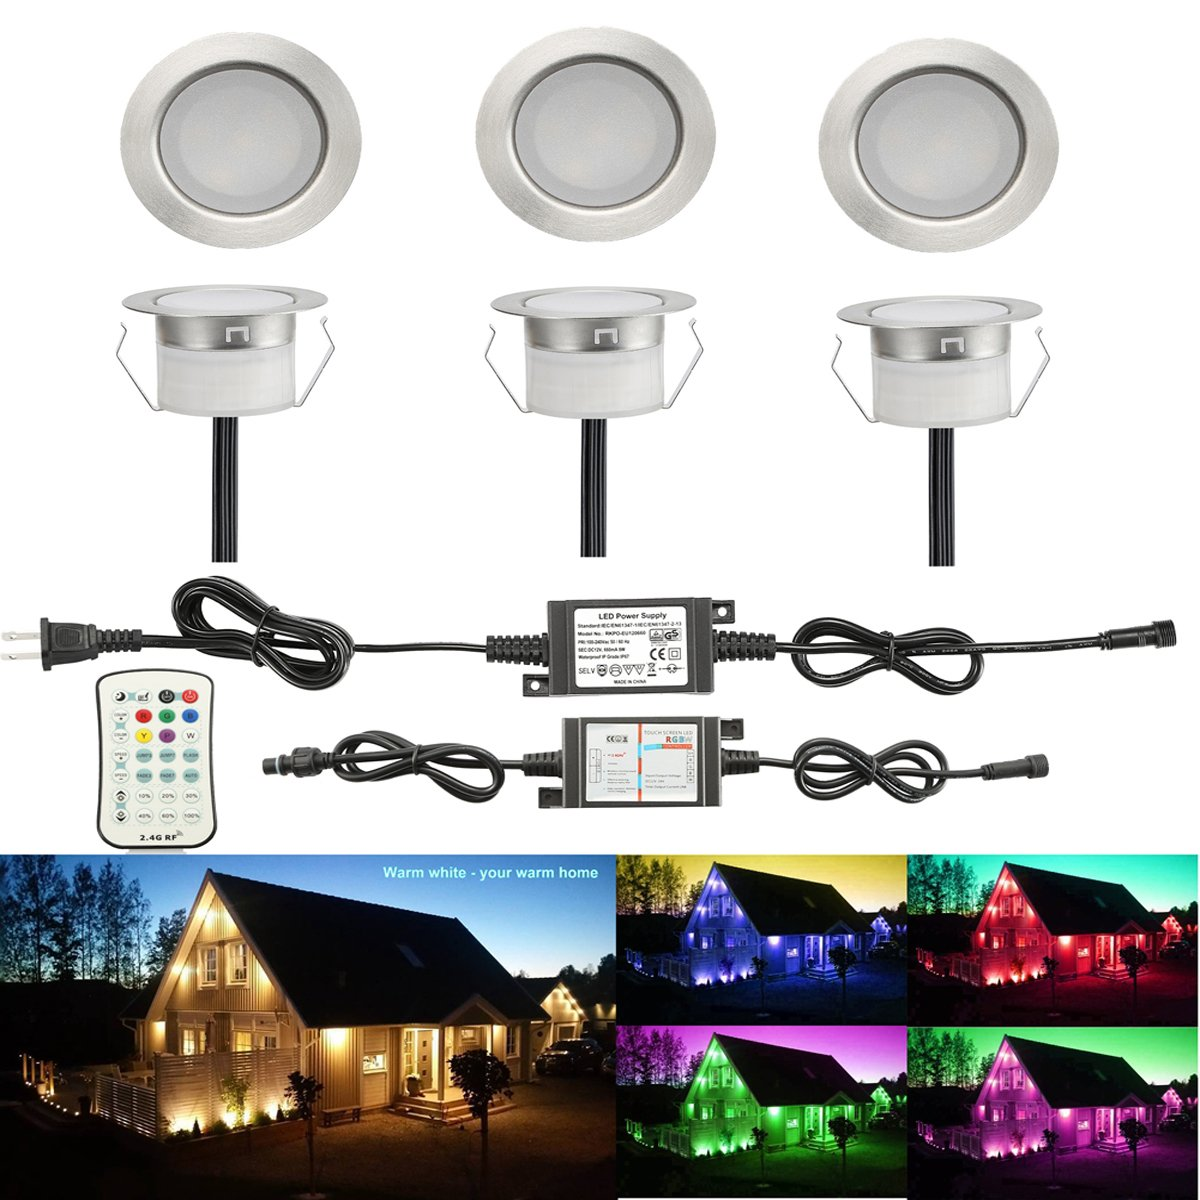 FVTLED Pack of 6 Low Voltage LED Deck Lighting Kit Stainless Steel Waterproof Outdoor Landscape Garden Yard Patio Step Decoration Lamp LED In-ground Light (6pcs, RGBW)